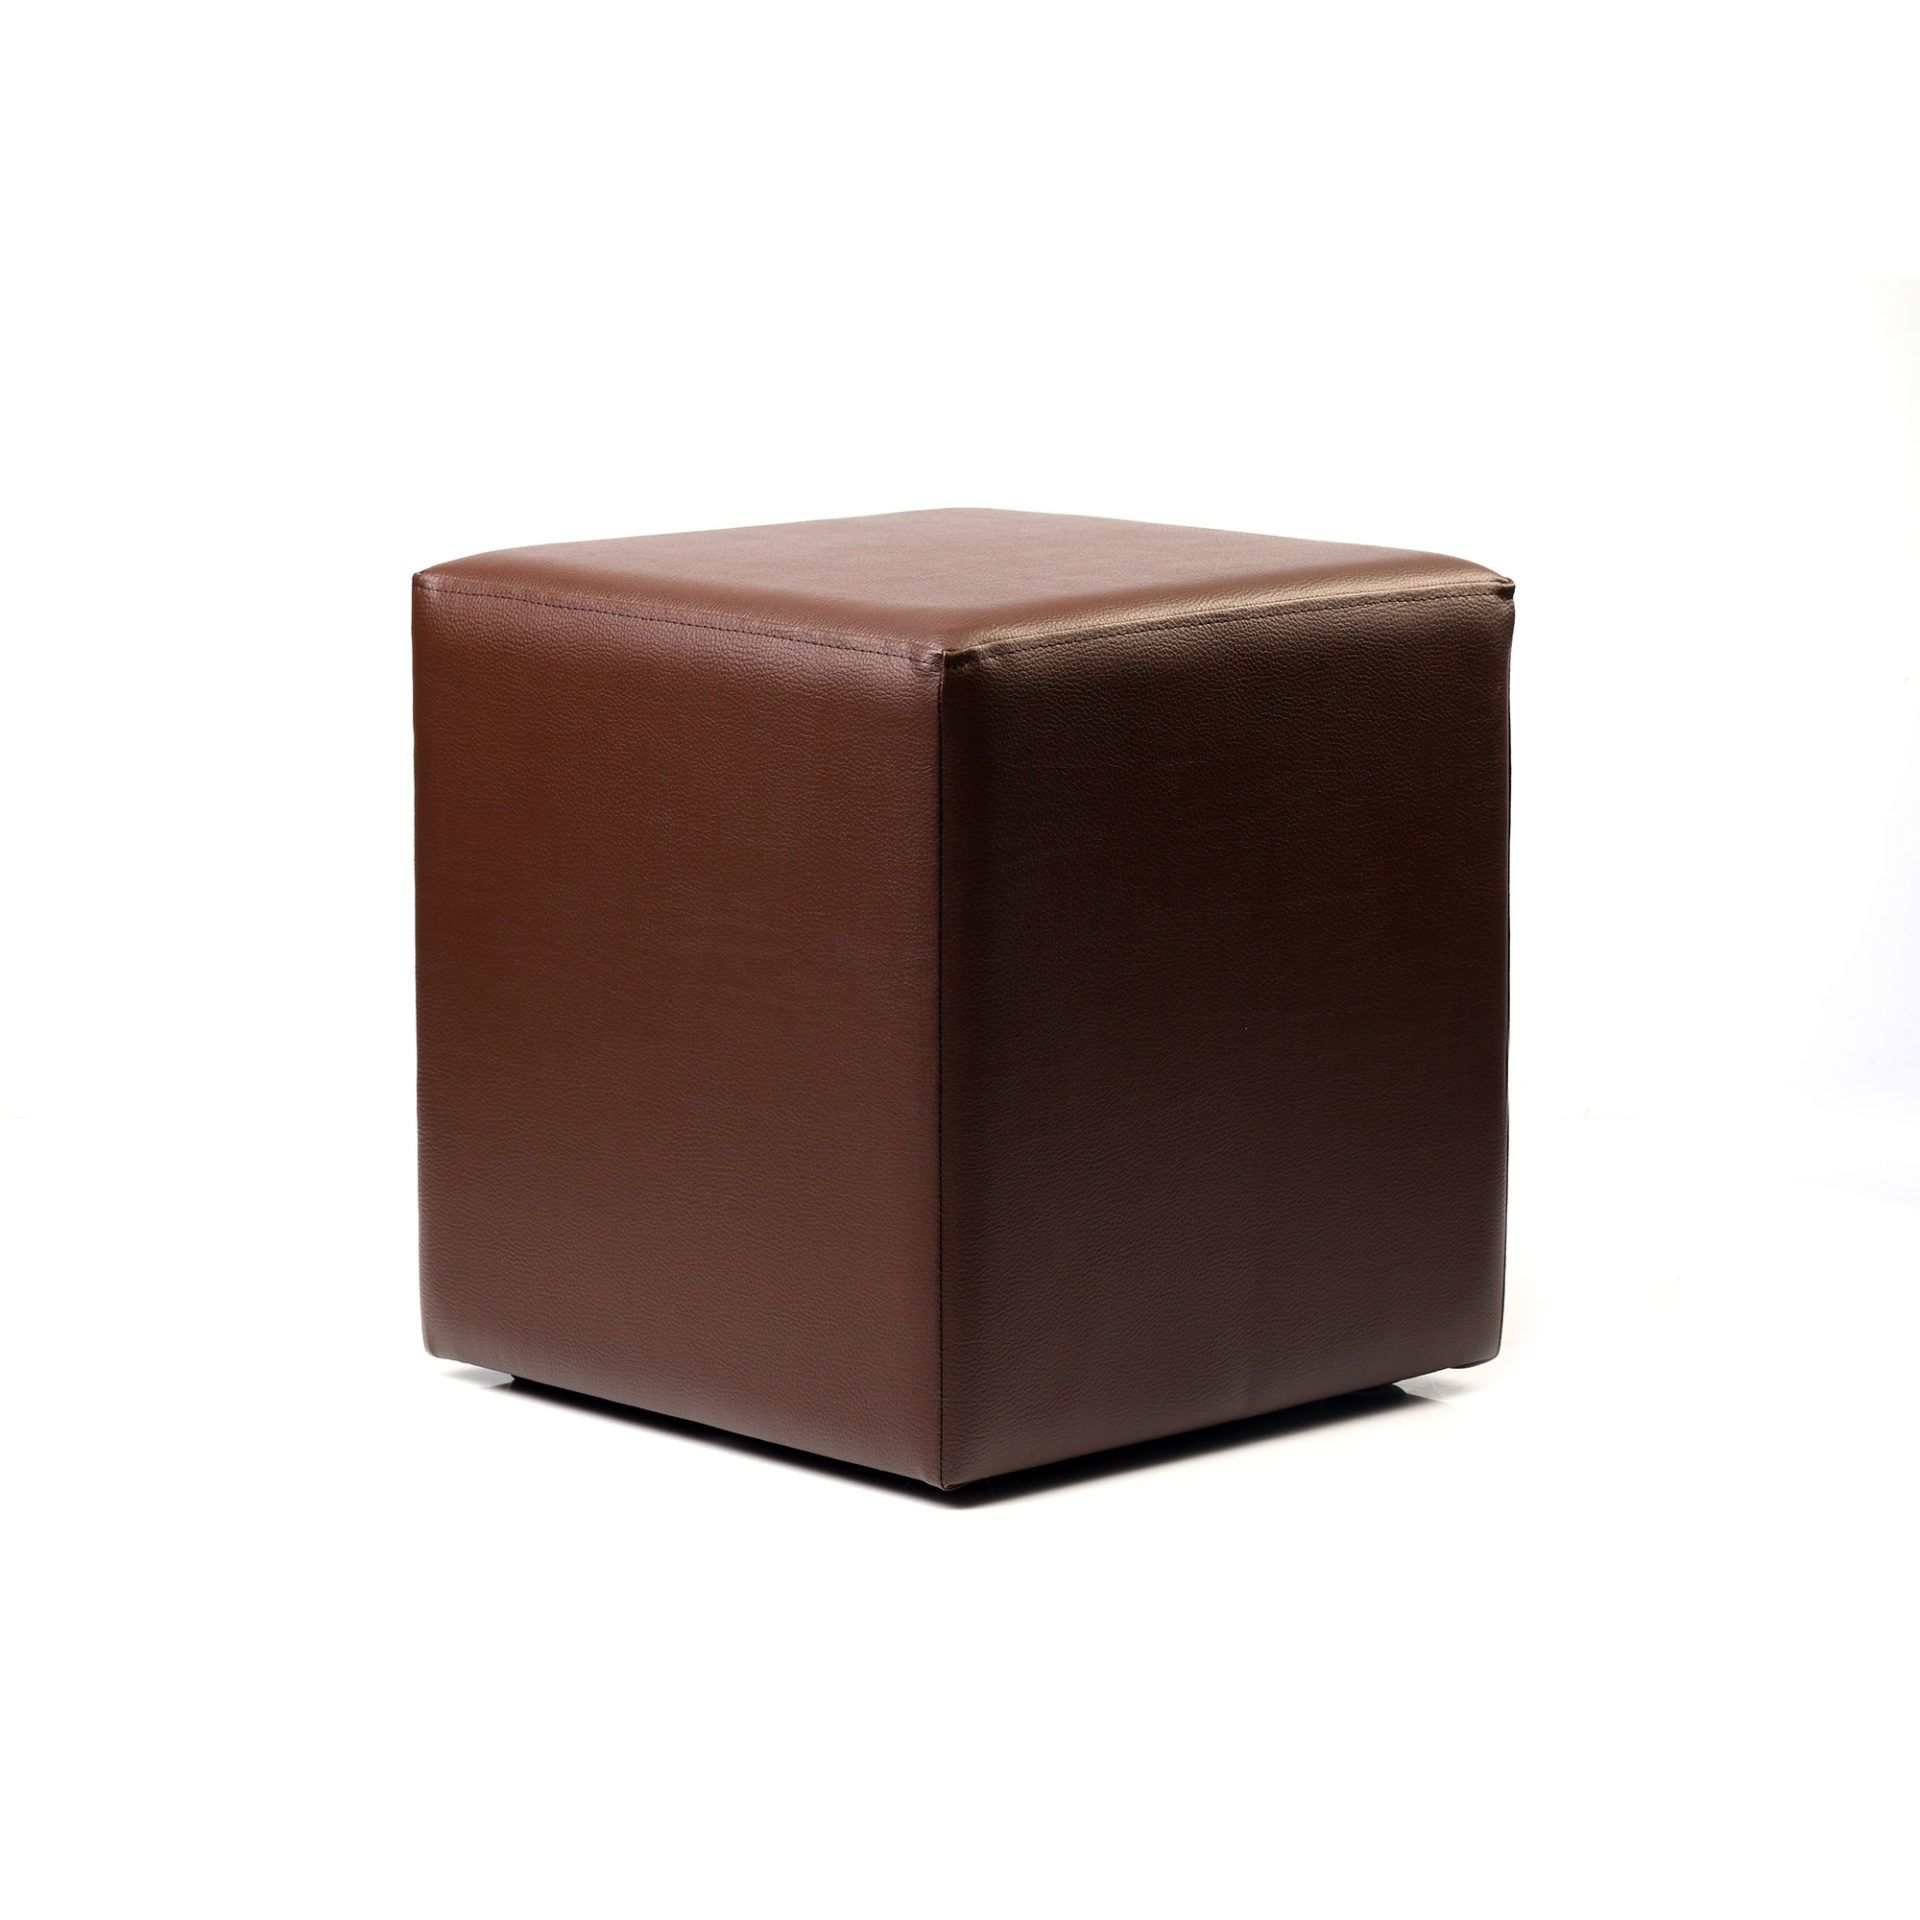 Ottoman Cube - Chocolate - Made In Europe